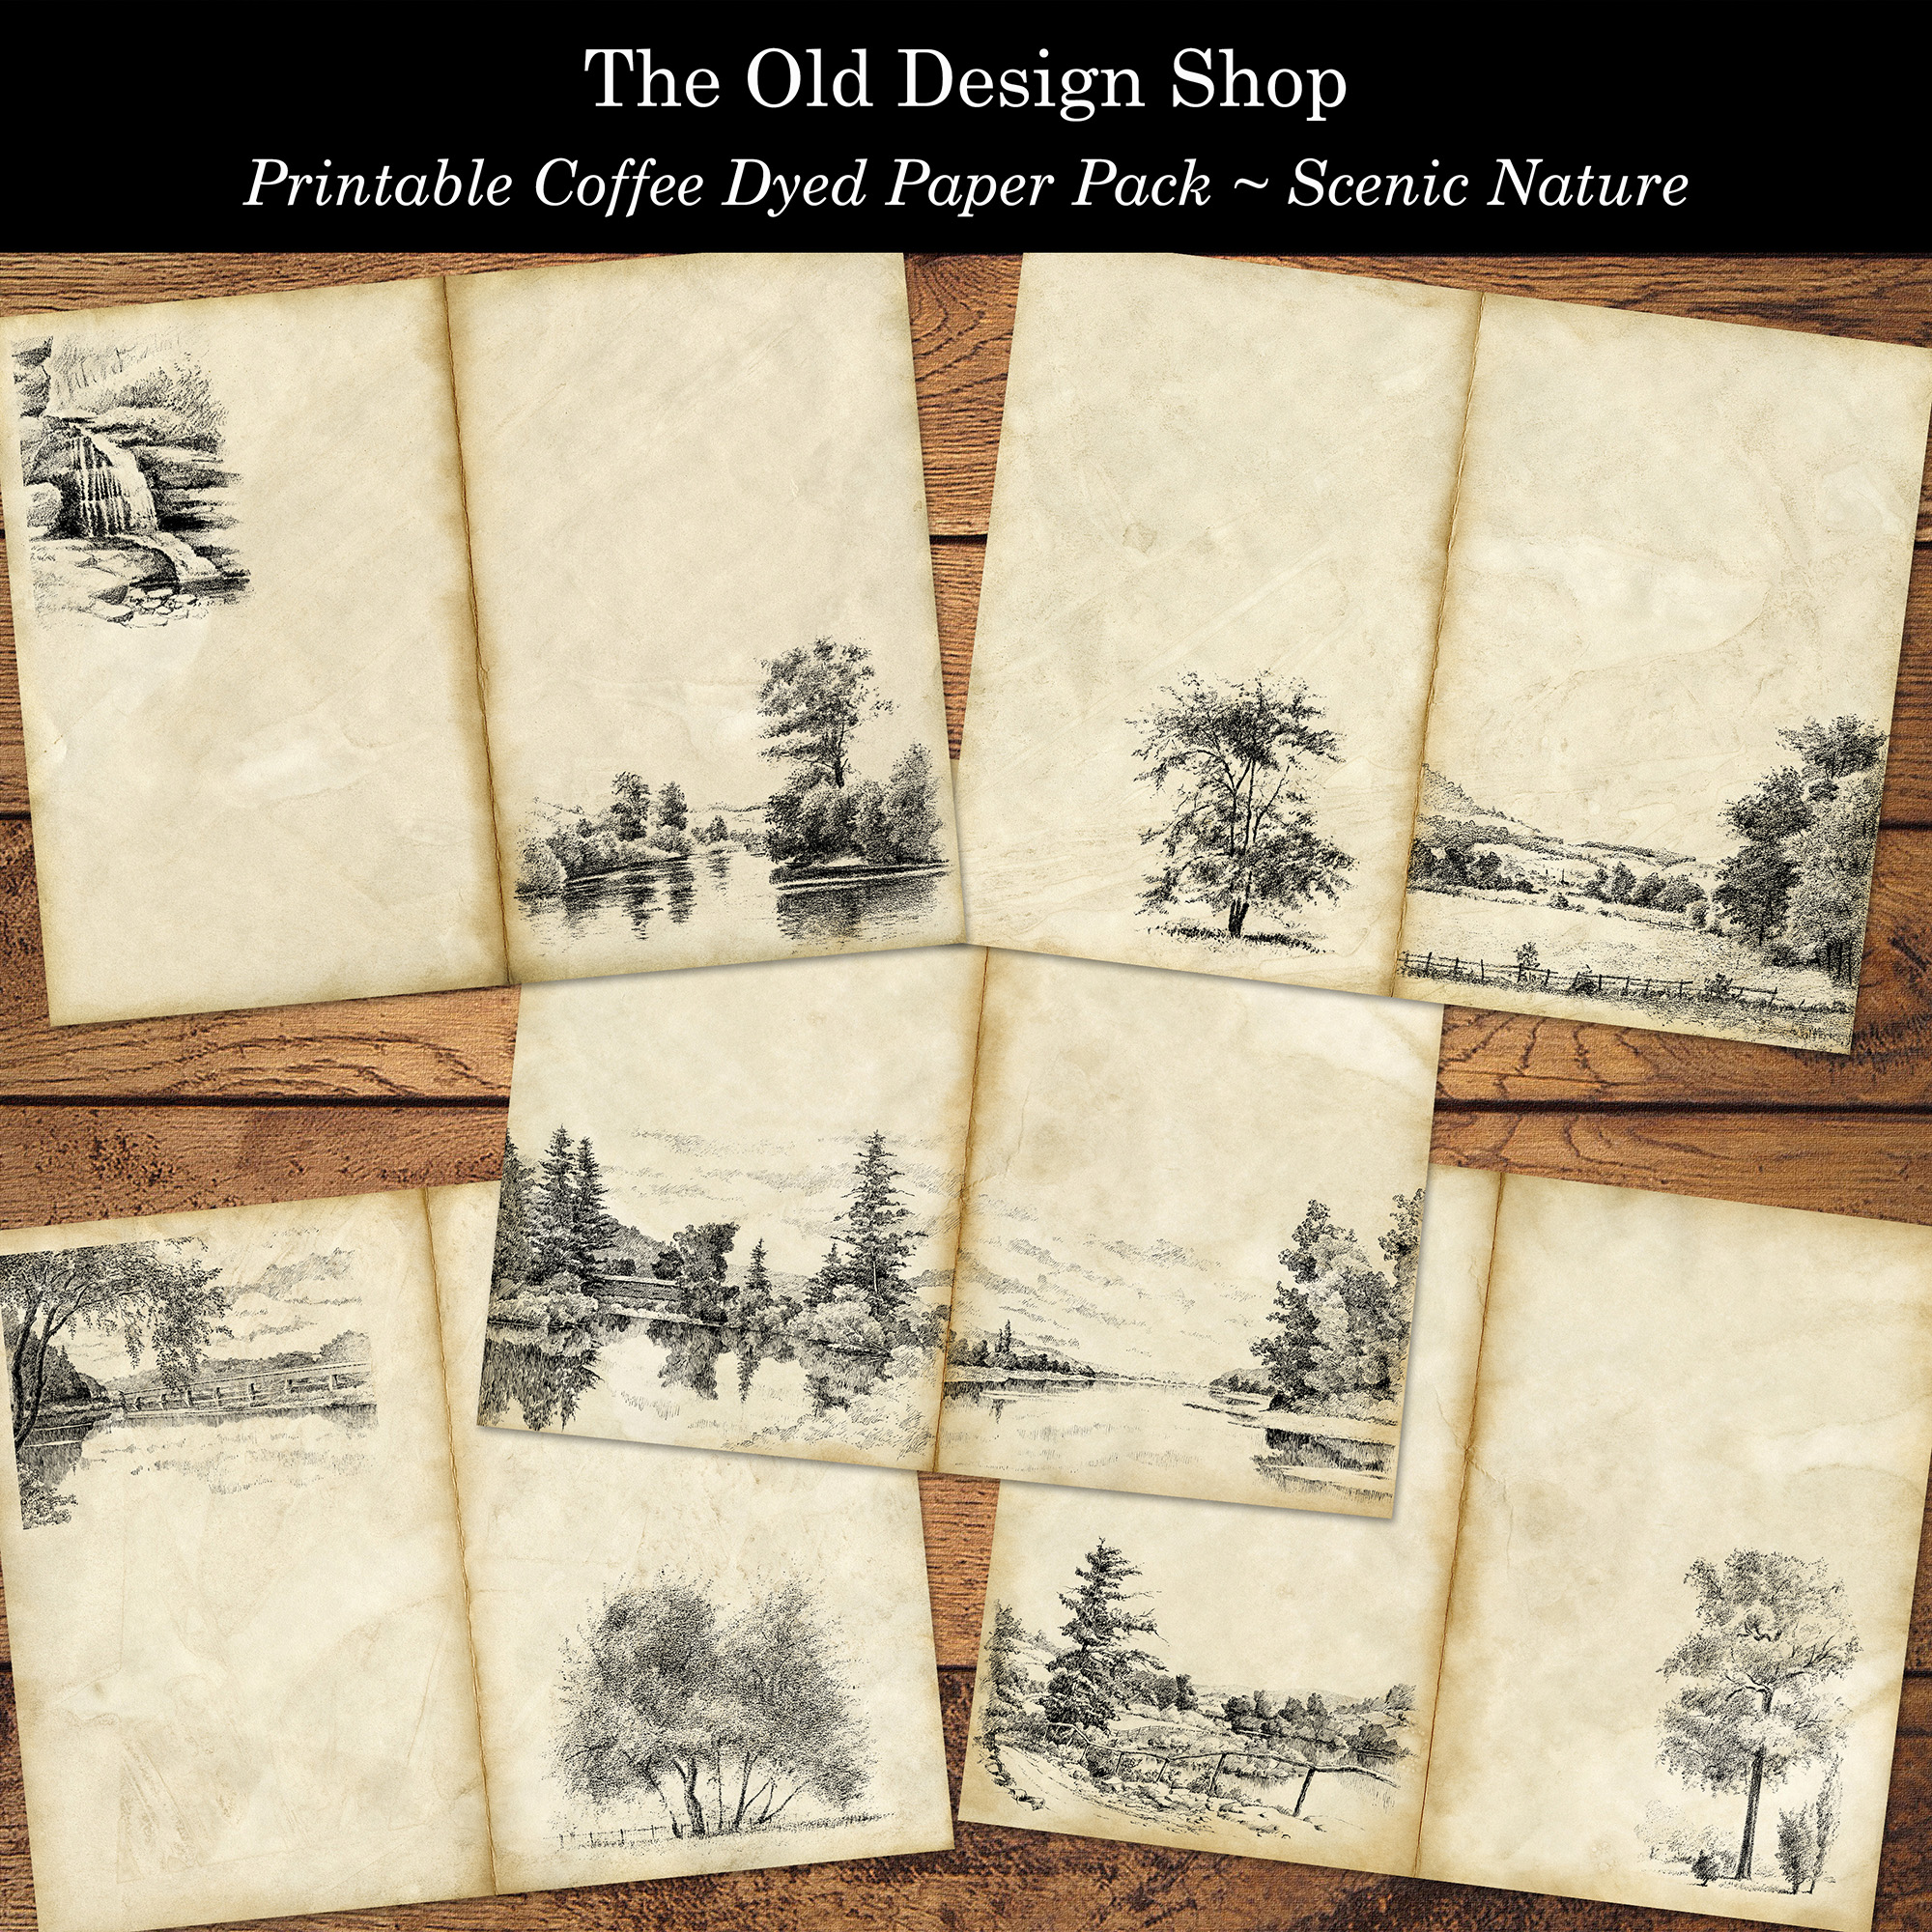 printable coffee dyed scenic nature paper pack